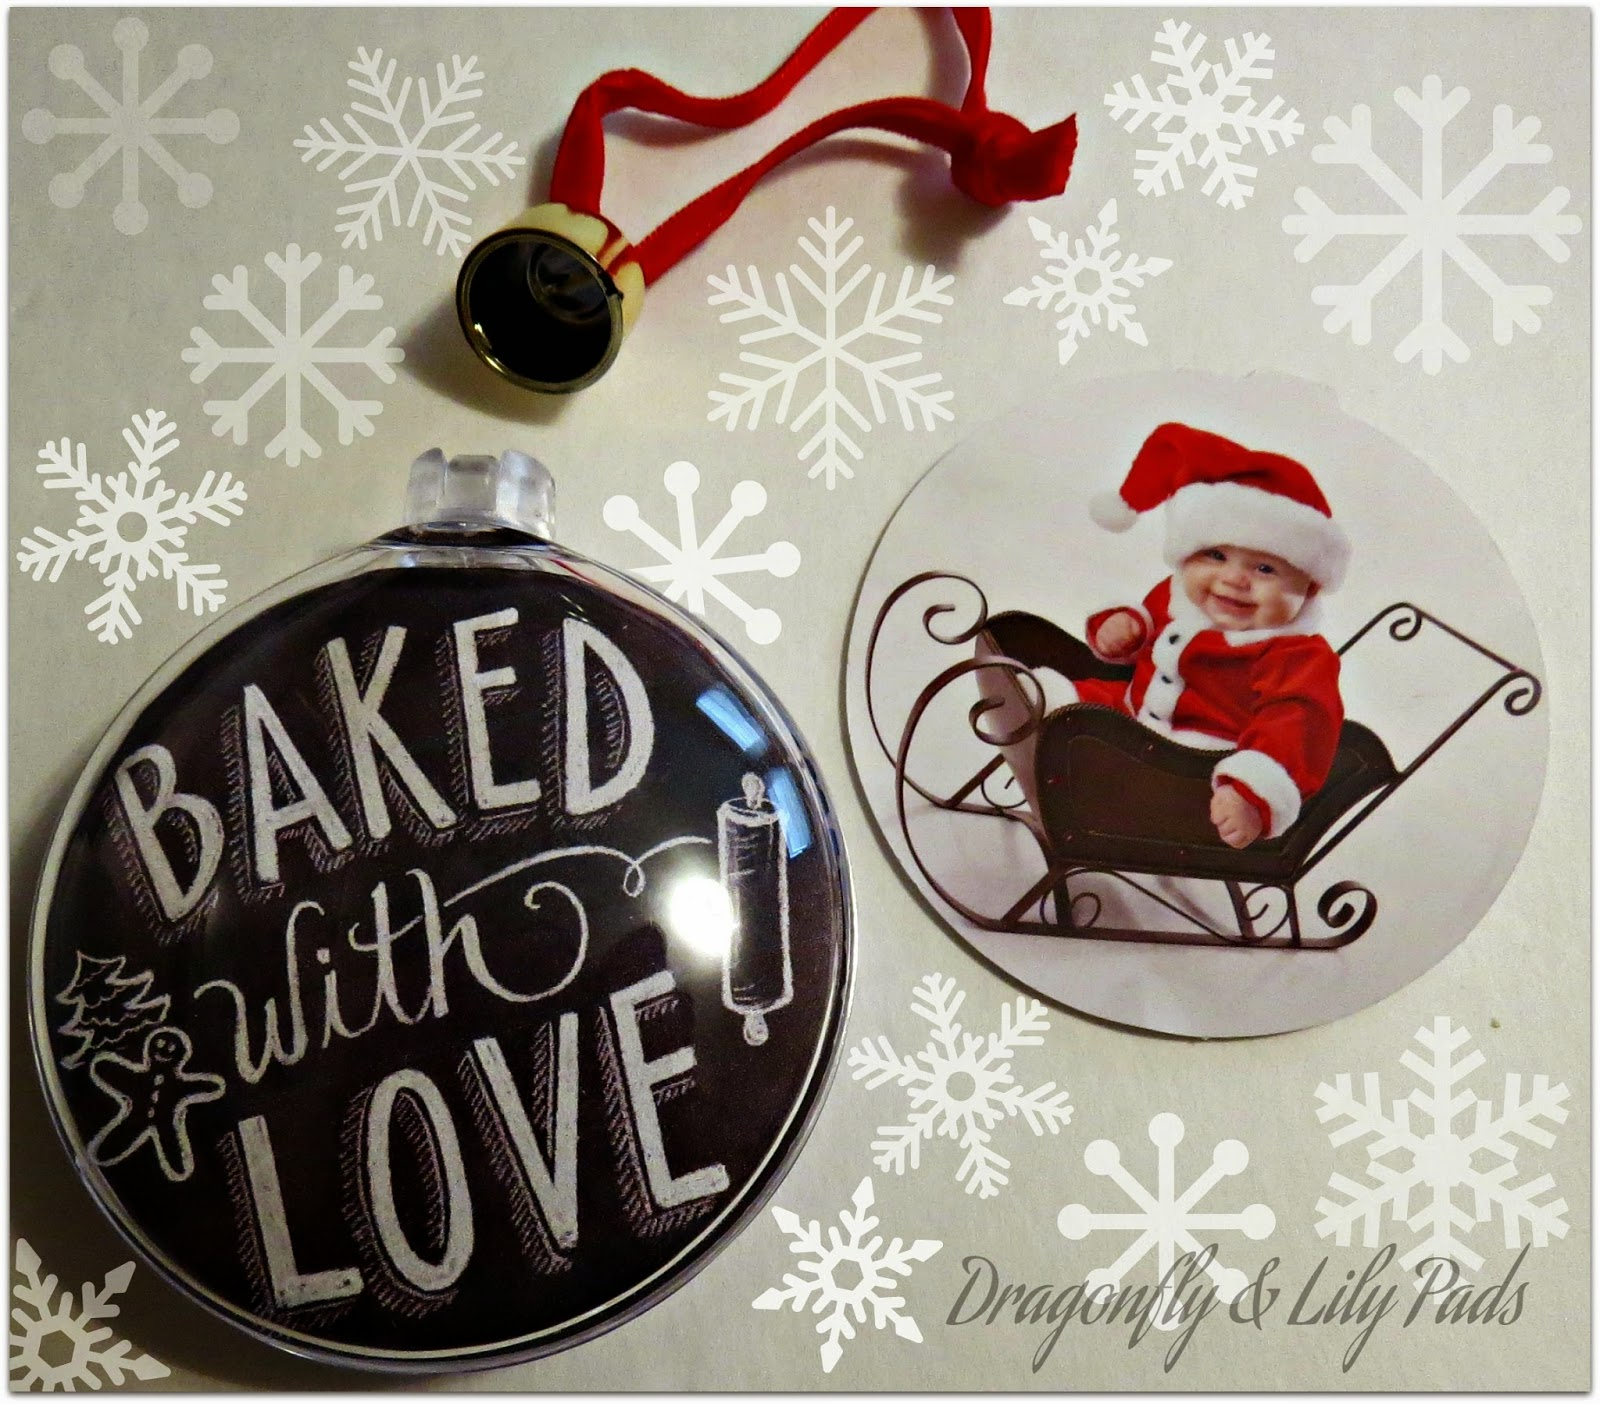 Christmas Ornament, Picture Personalized Ornament, D& LP Designs